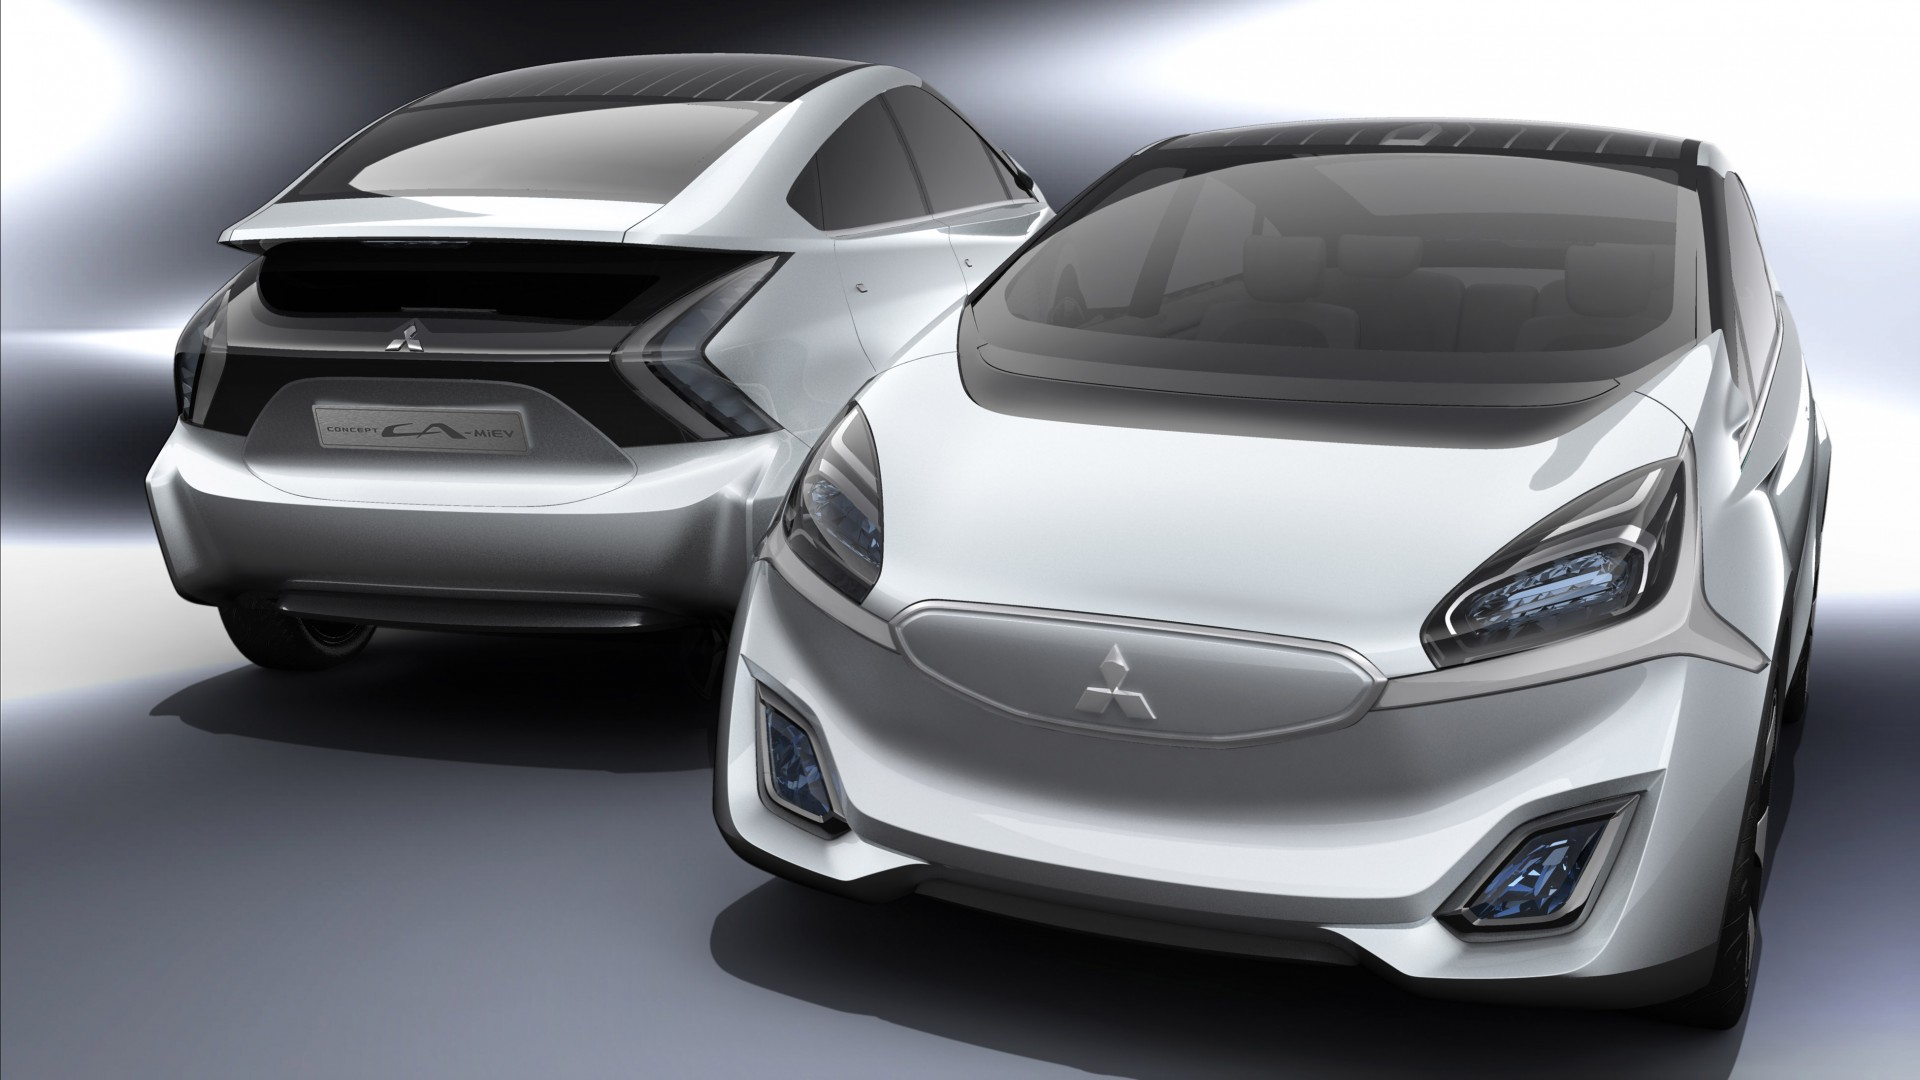 Mitsubishi CA-MiEV, concept, hybrid, ecosafe, electric cars, city cars, review, test drive, front, back (horizontal)